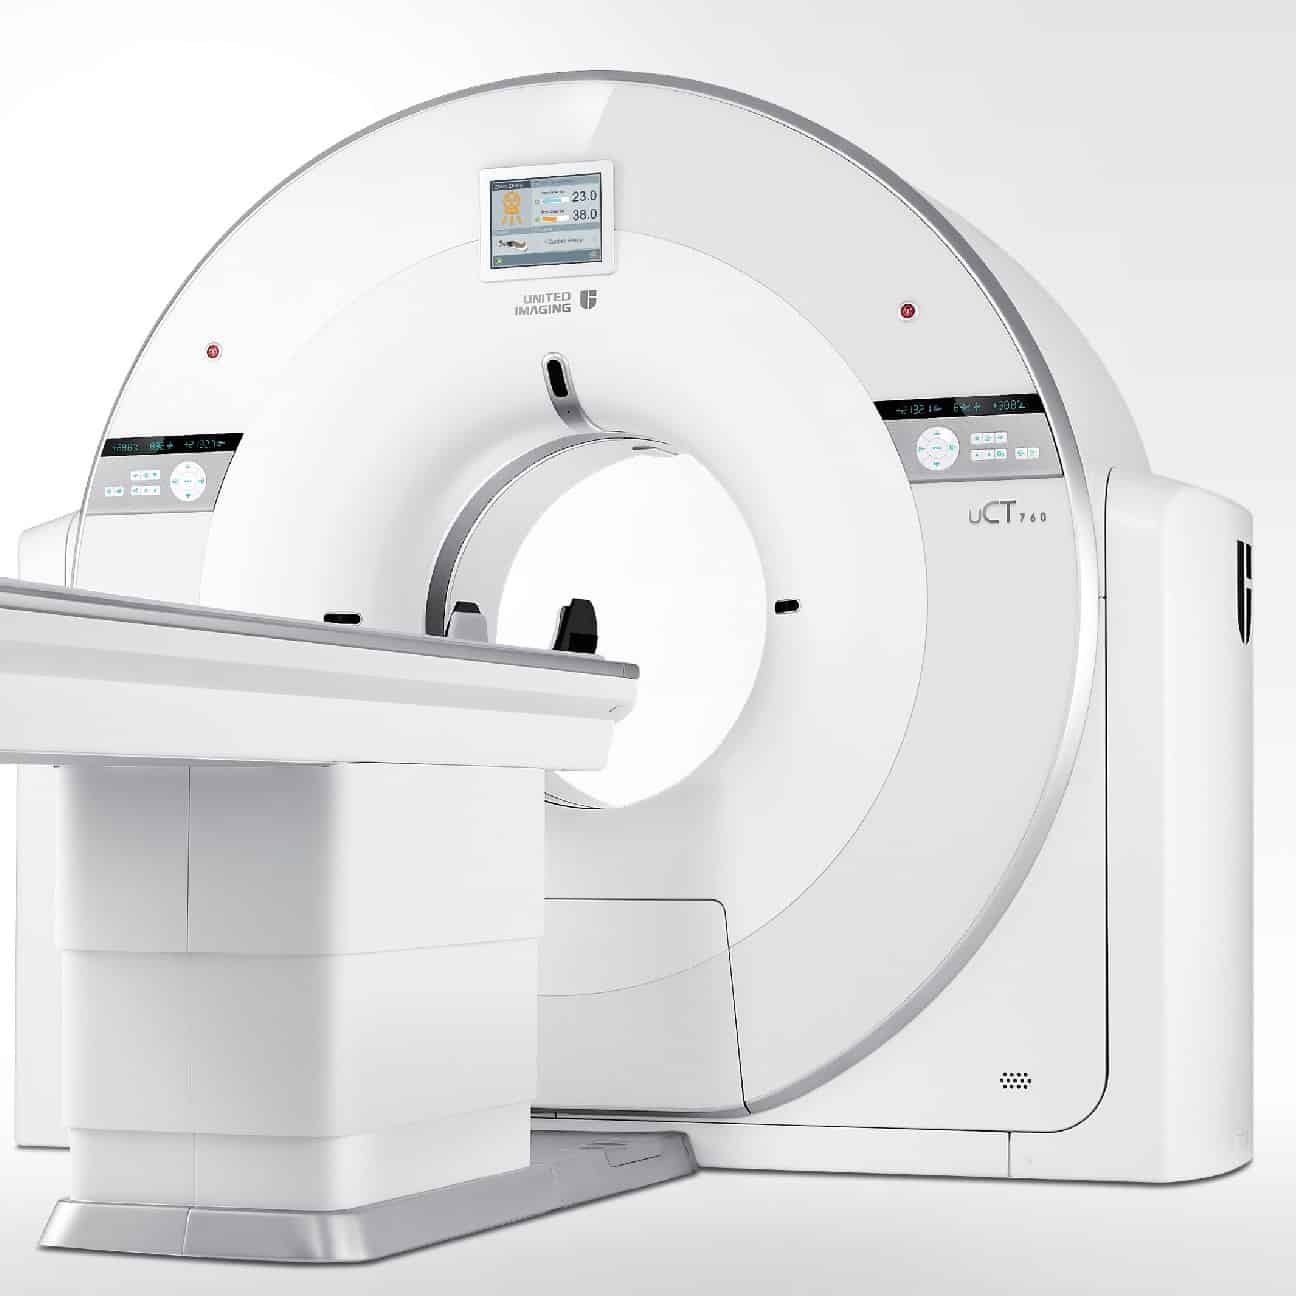 Low-Dose Scan Experience